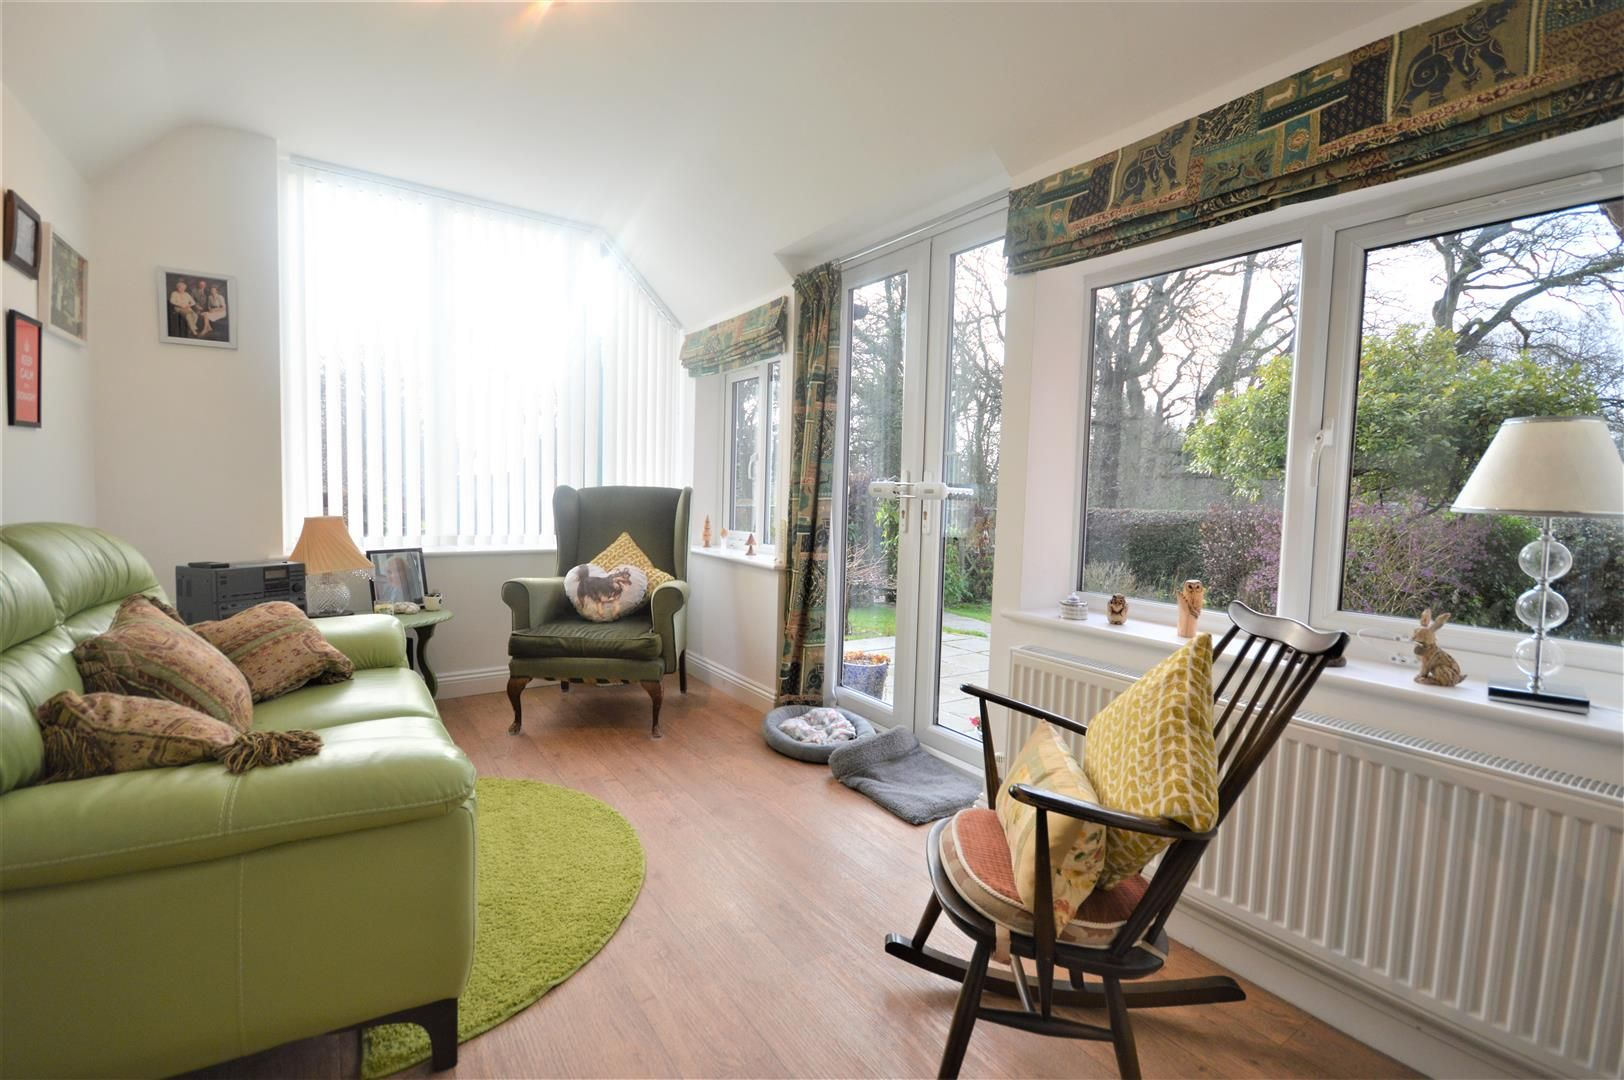 4 bed semi-detached for sale in Leysters 6